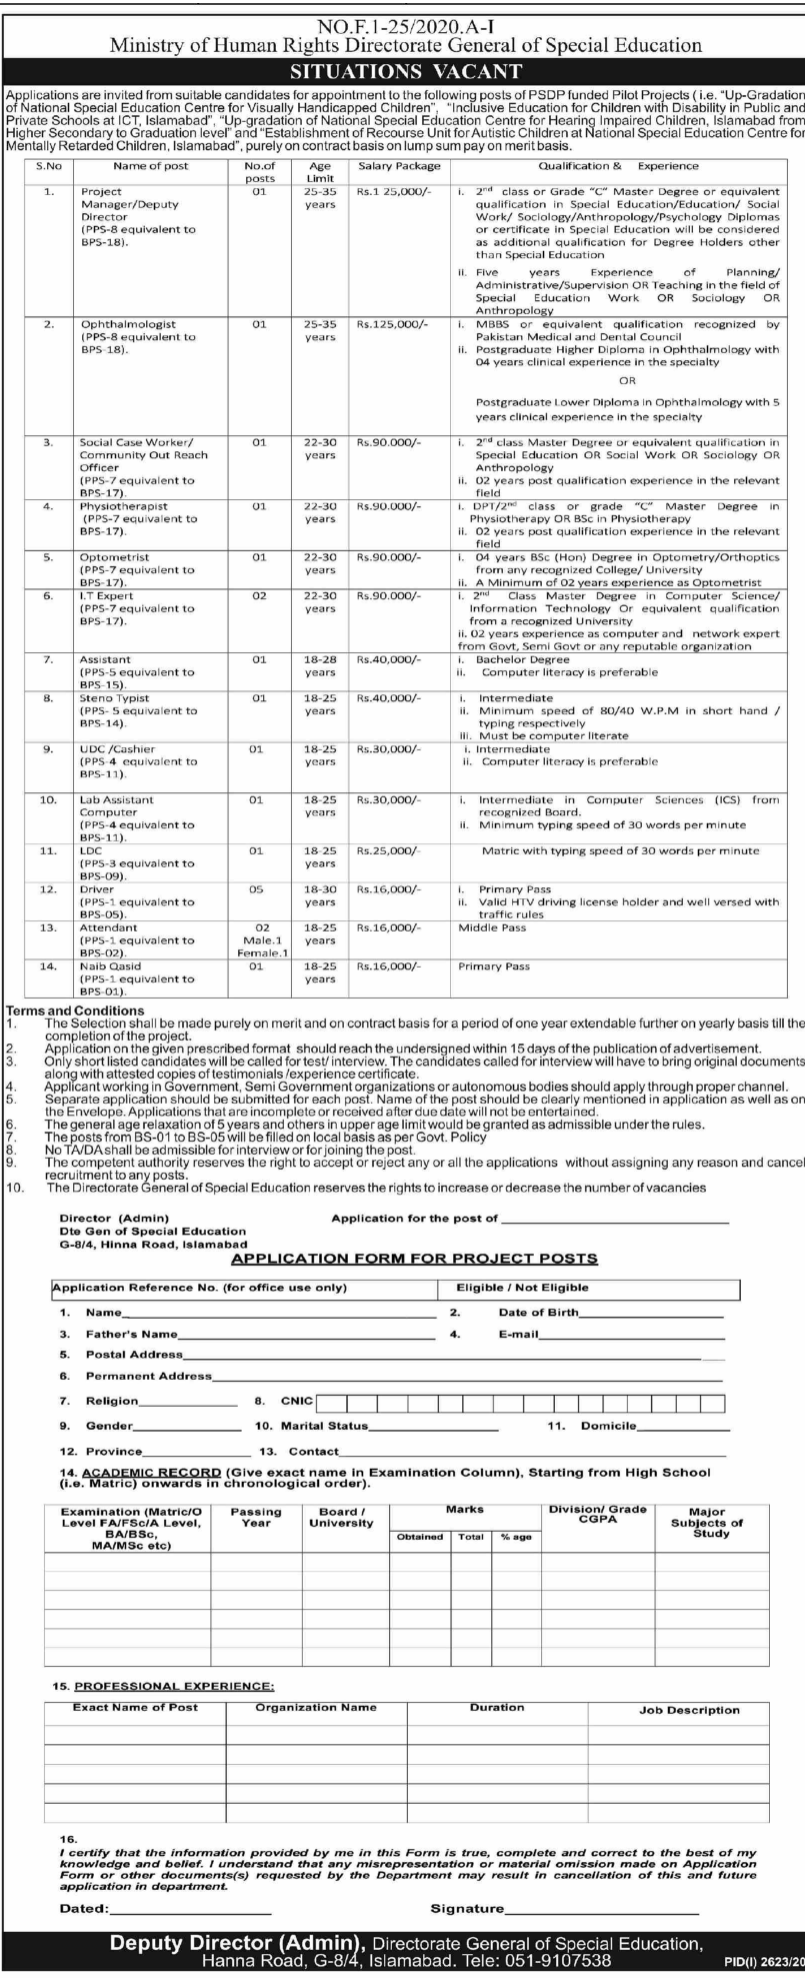 Physiotherapist Job in Ministry of Human Rights Directorate General of Special Education in Islamabad for Pakistan Candidates -2020